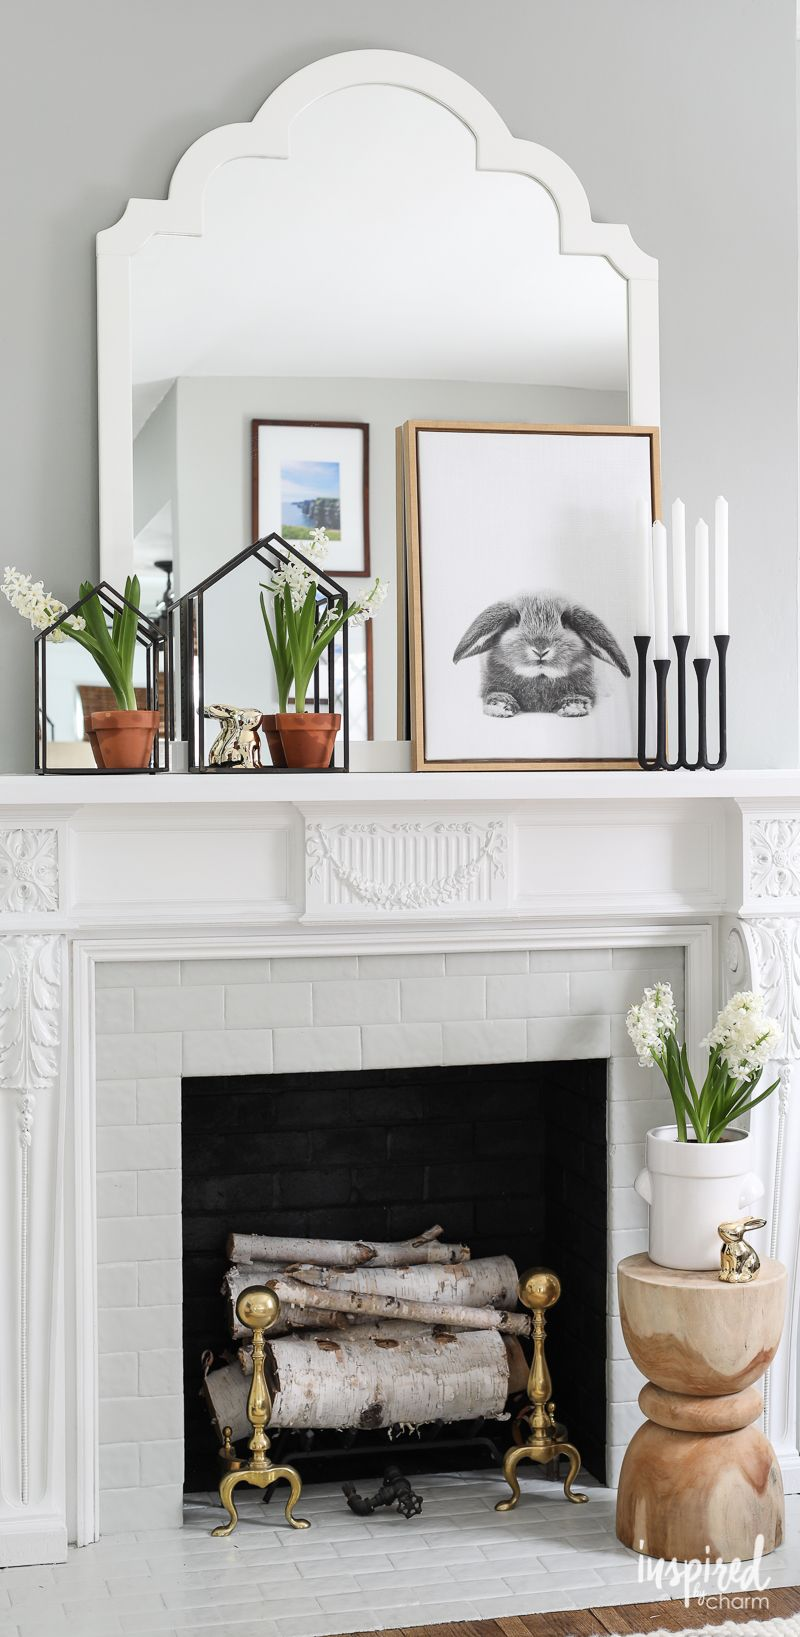 Welcome Spring with a Nature-Inspired Mantel | Mantels decor ...